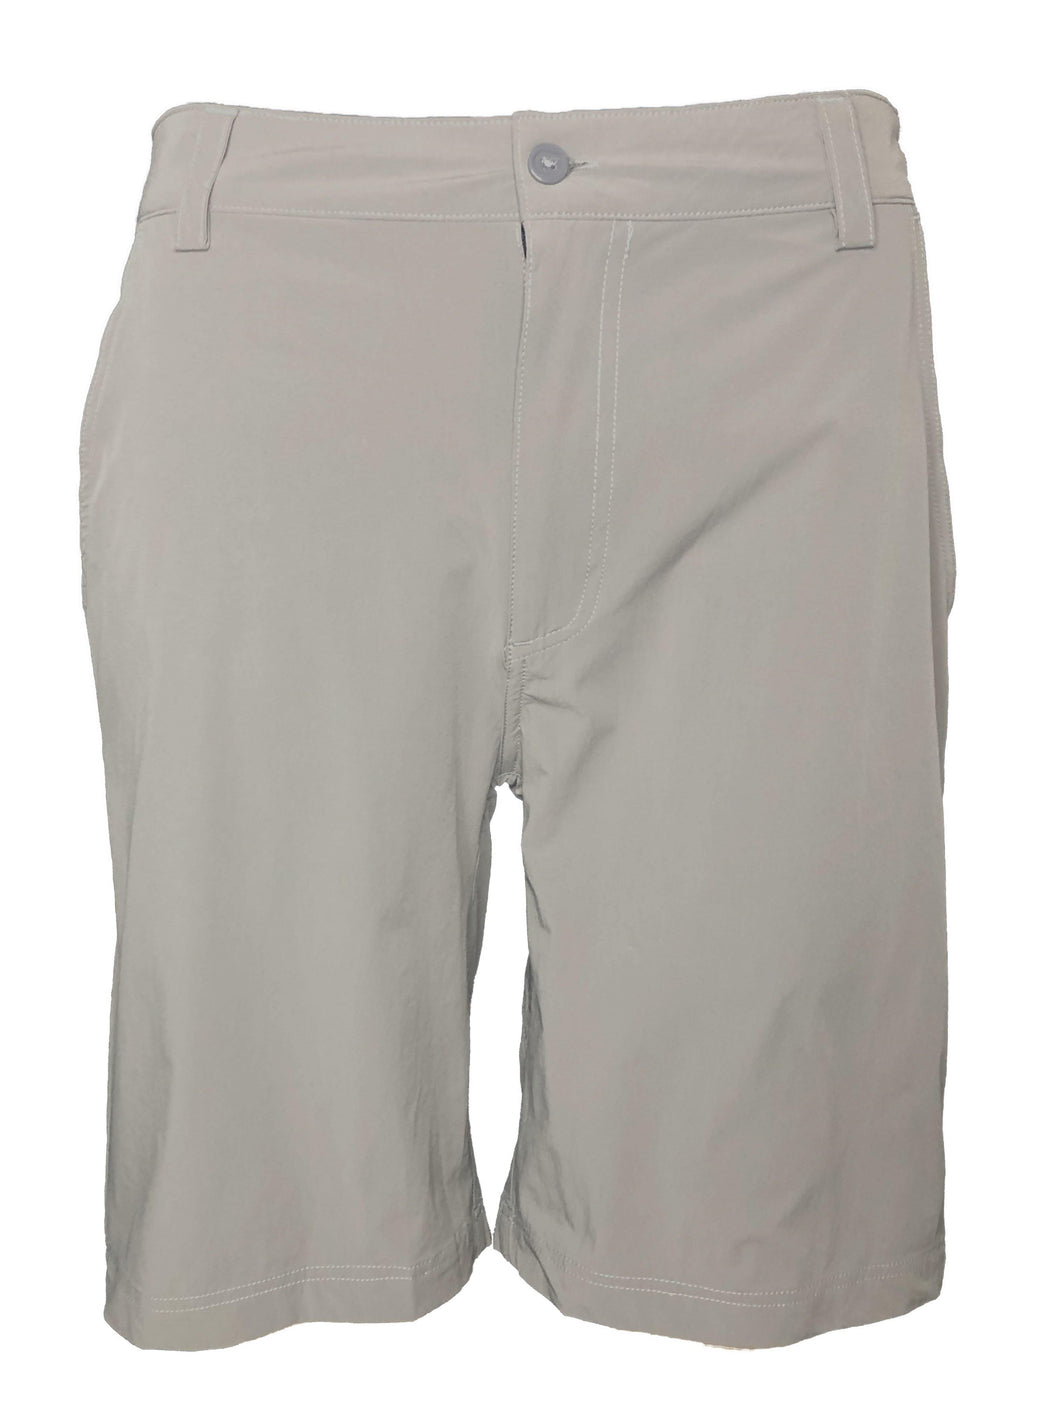 Topwater Original Casual Shorts - Gray